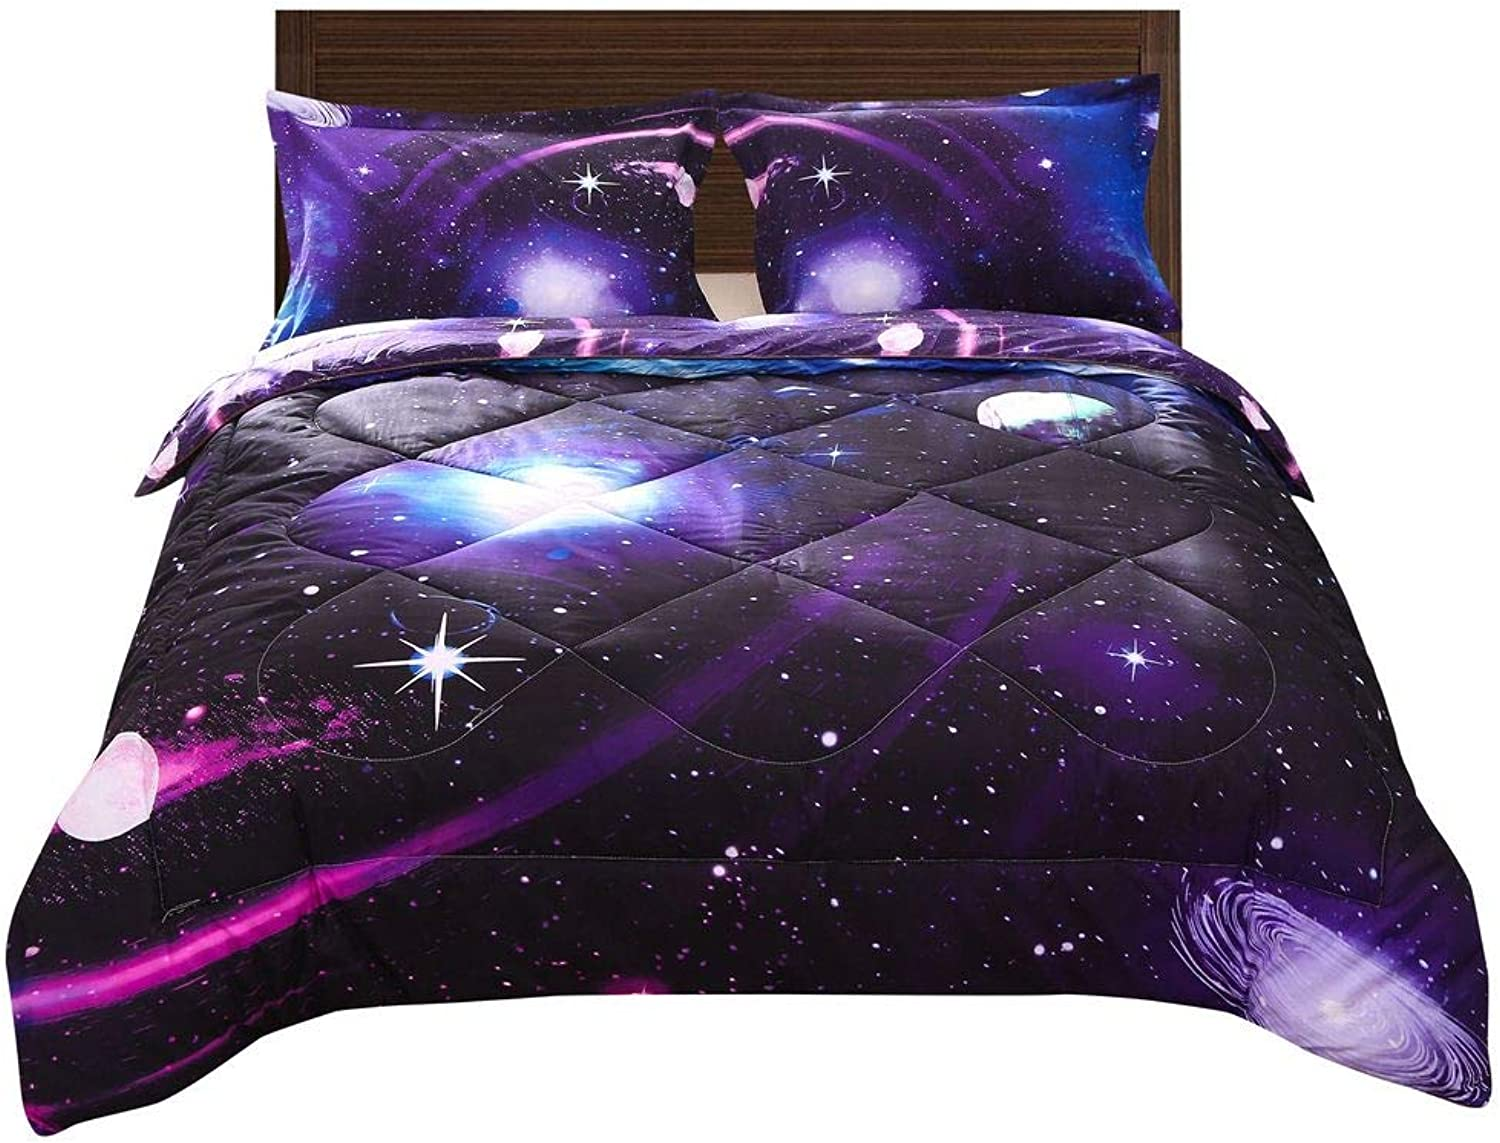 Babycare Pro 3D Galaxy Comforter Sets Full Size for Teen Kids, Cheap Comforter Bedding Sets 3 Piece, 1 Comforter, 2 Pillowcases (Full, Galaxy Purple Comforter Sets)